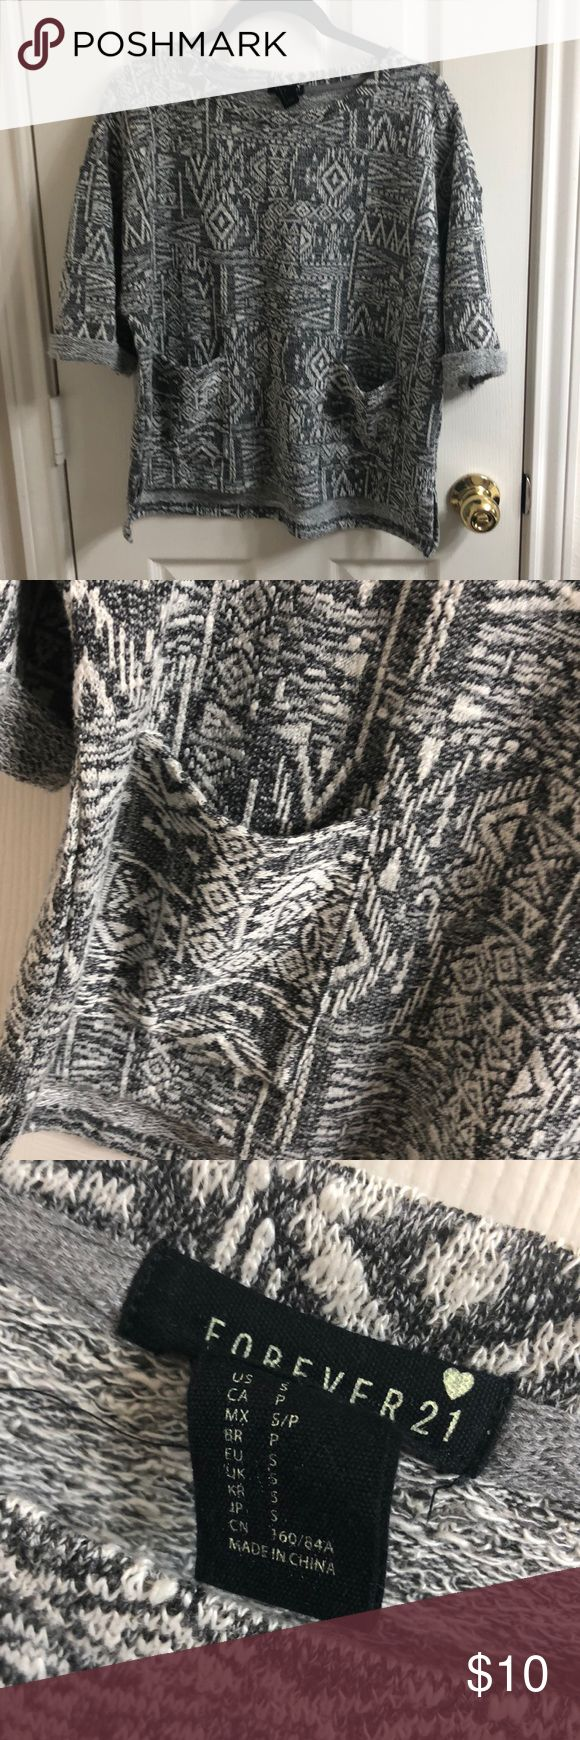 Forever 21 Sweater Shirt Short sleeve grey + white tribal print sweater from Forever 21. Two pockets in front. Never worn! Forever 21 Sweaters Crew & Scoop Necks